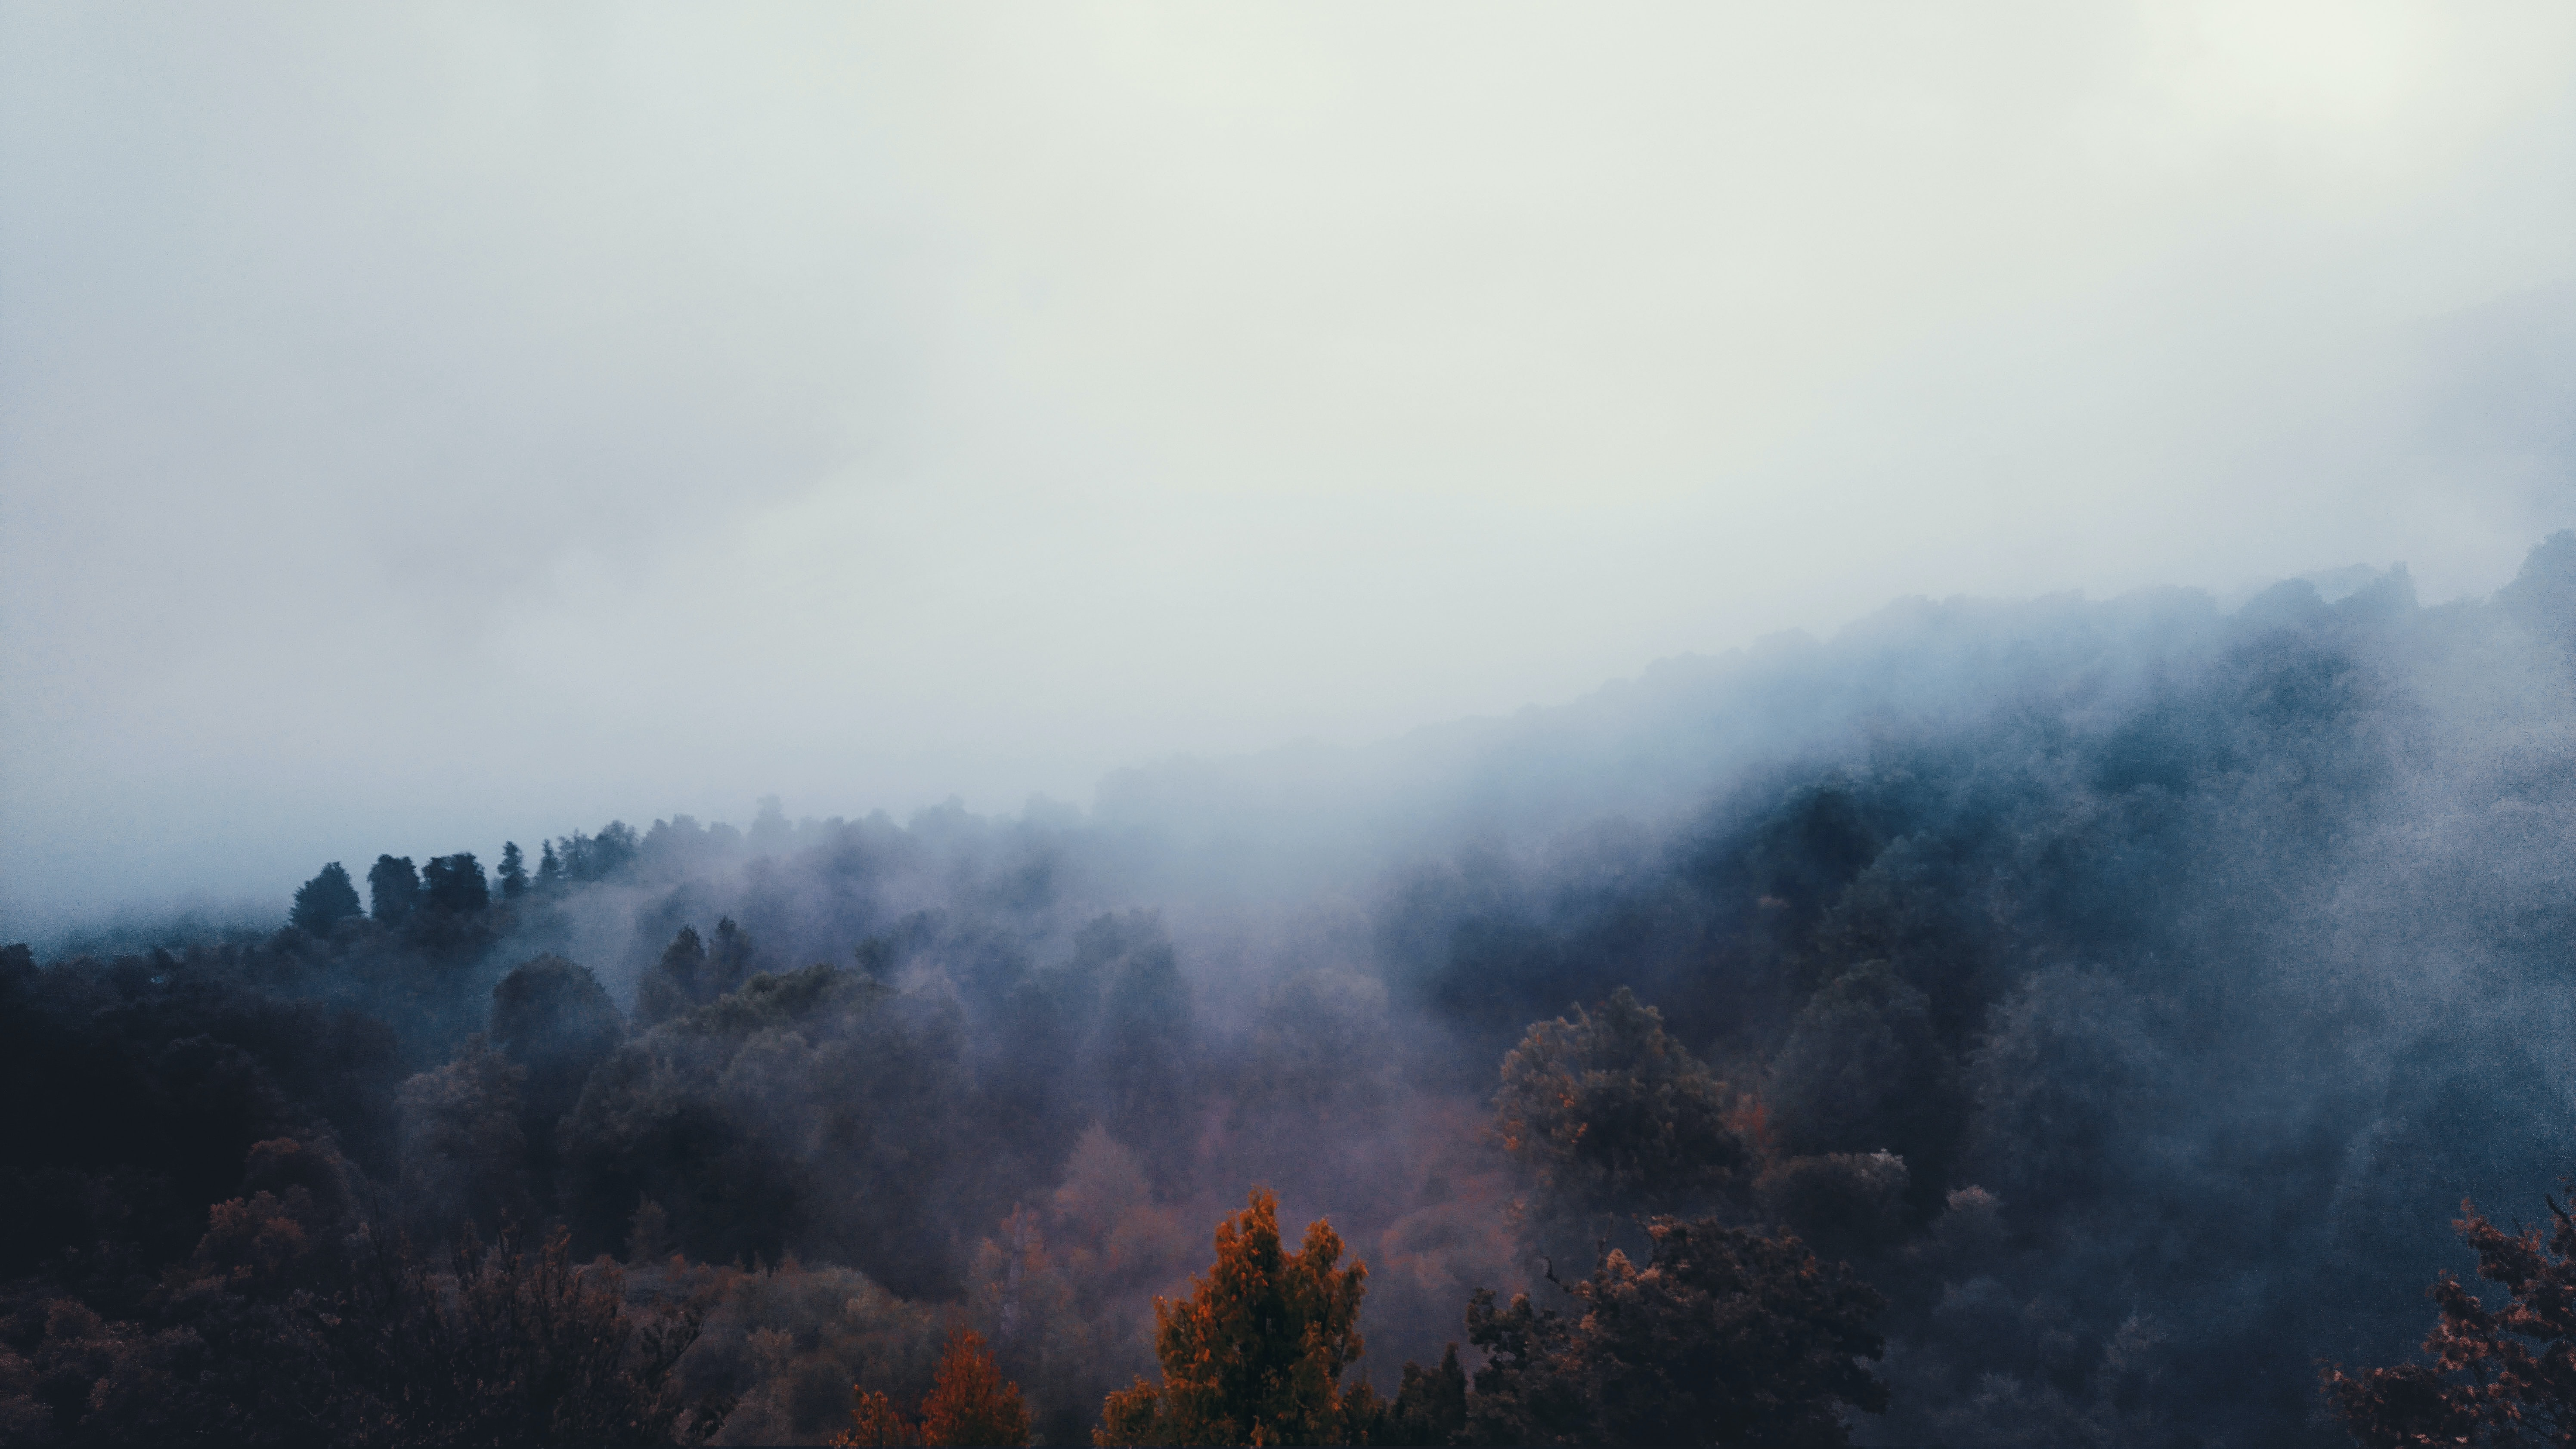 bird's eye view photo of white fogs on forest